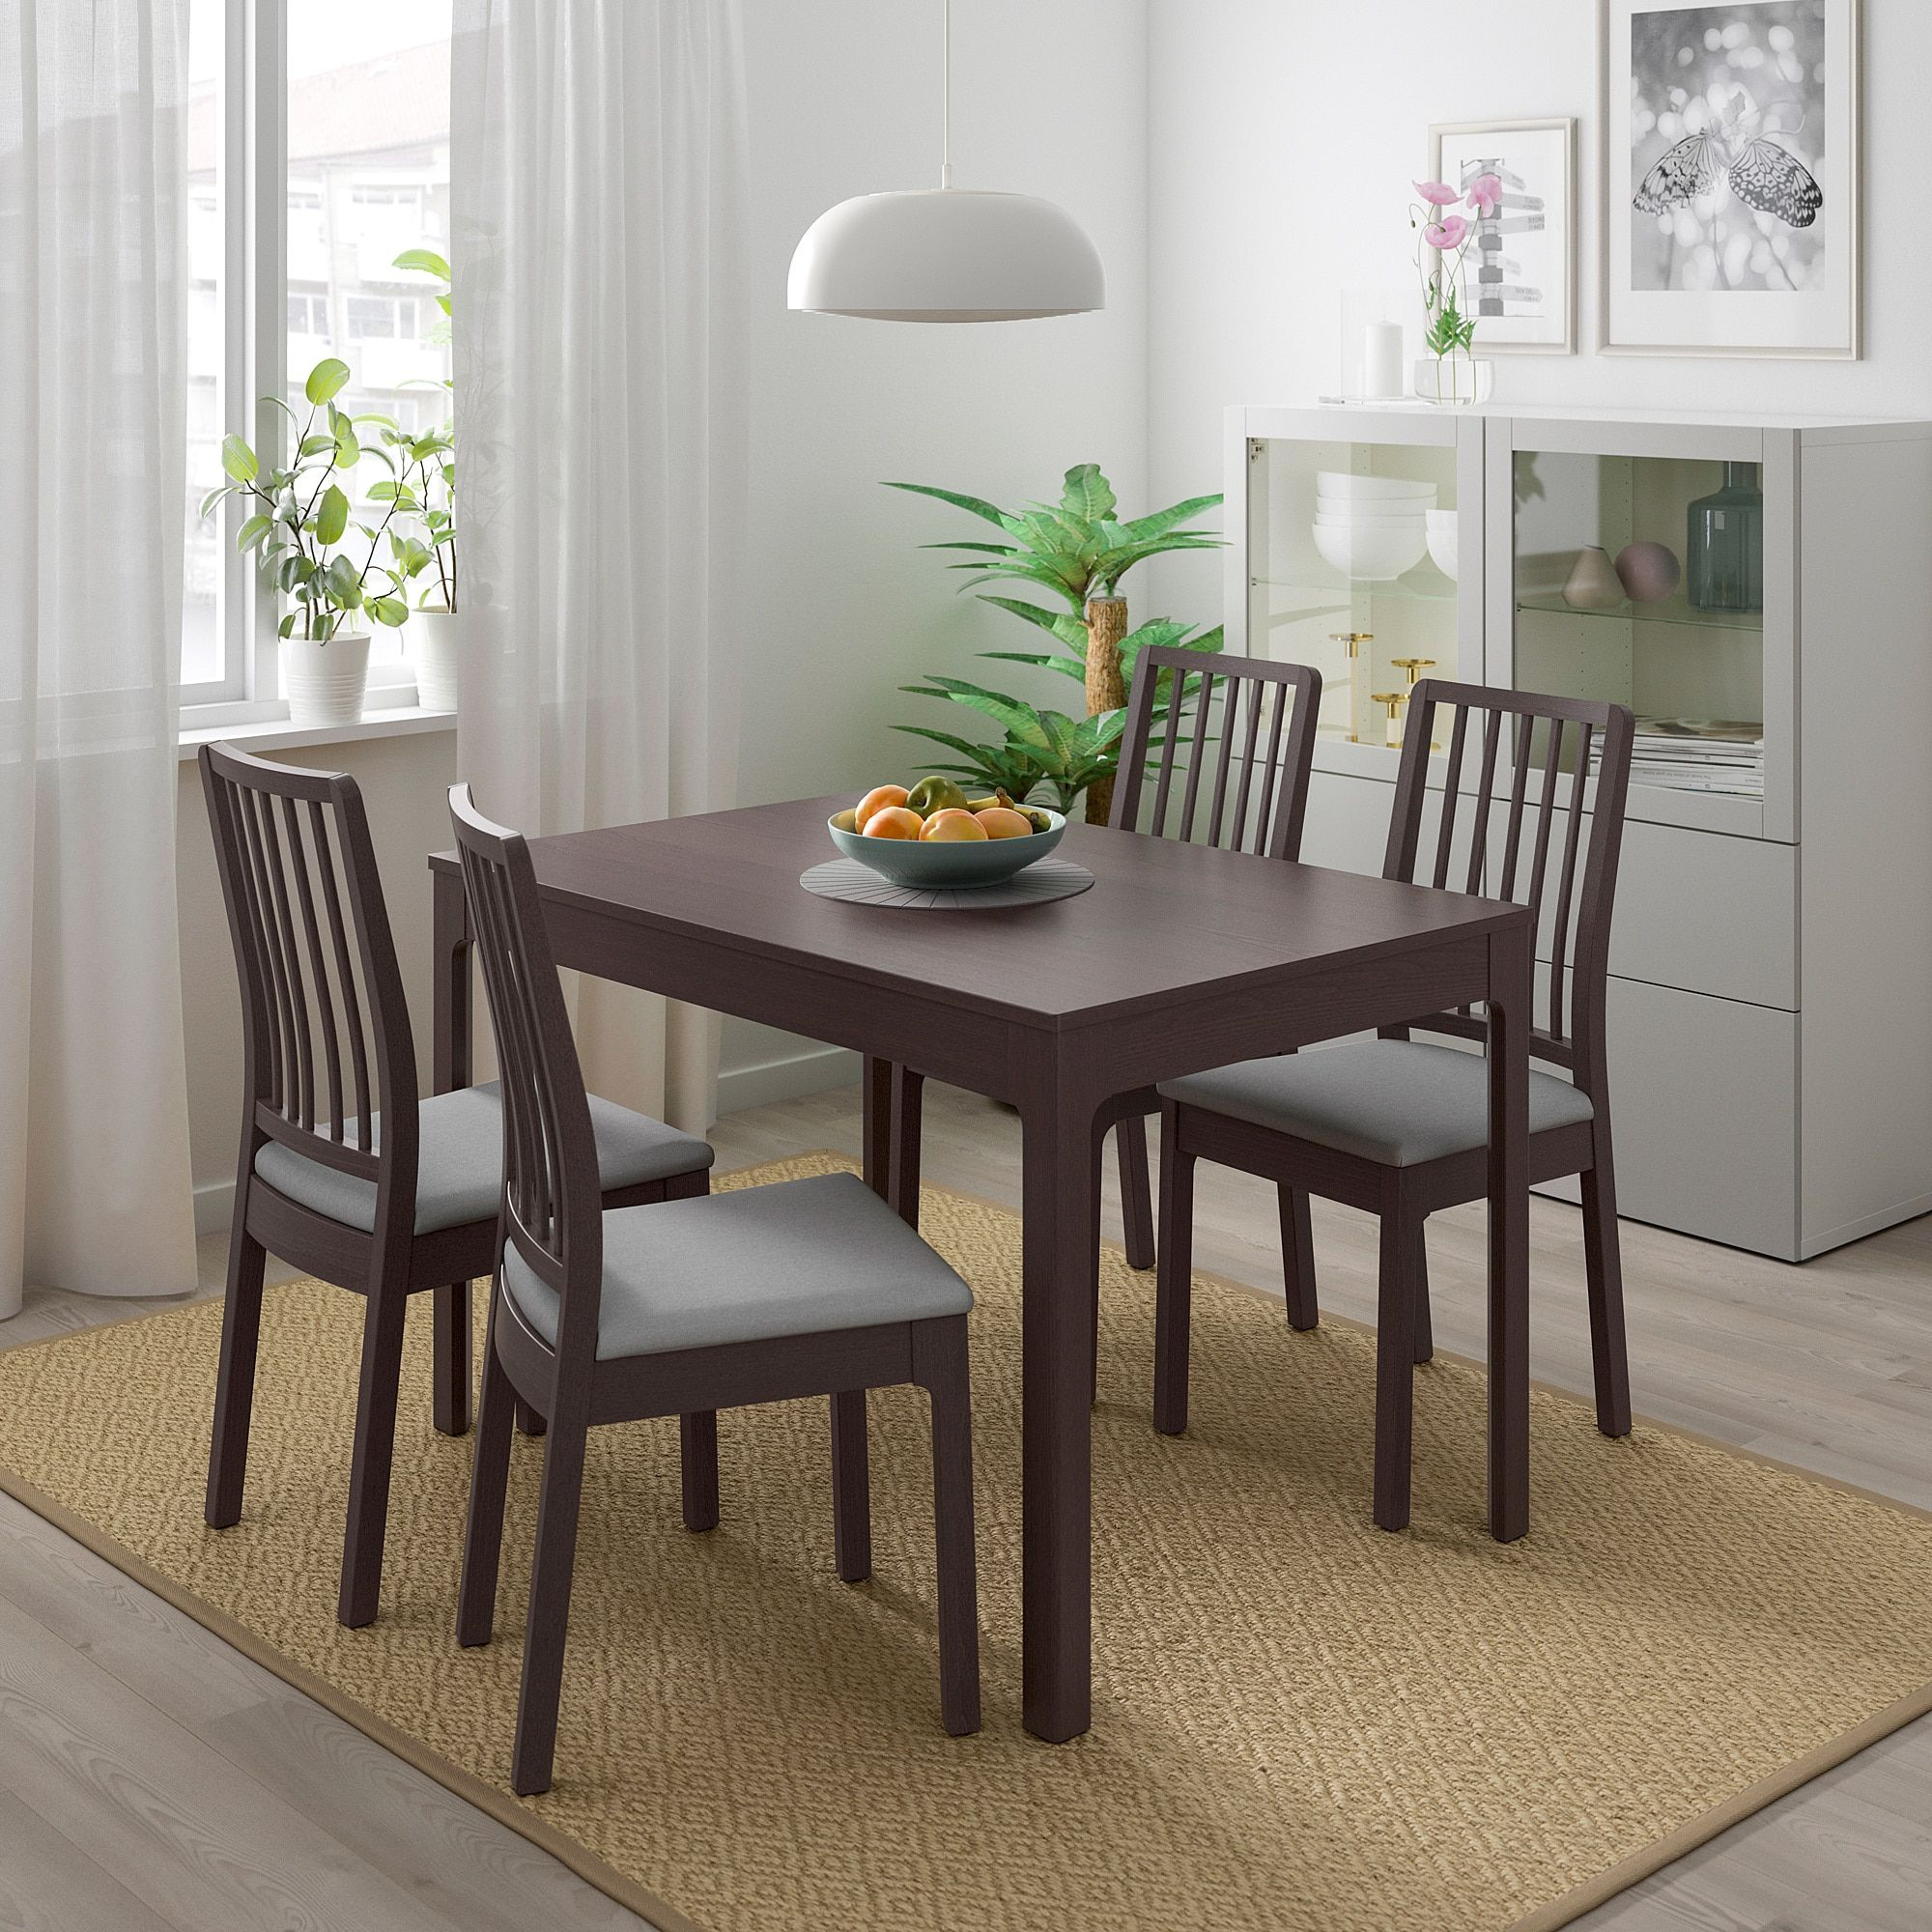 Ekedalen Extendable Table Dark Brown 47 1 4 70 7 8x31 1 2 In 2020 Dining Room Sets Dining Table Furniture